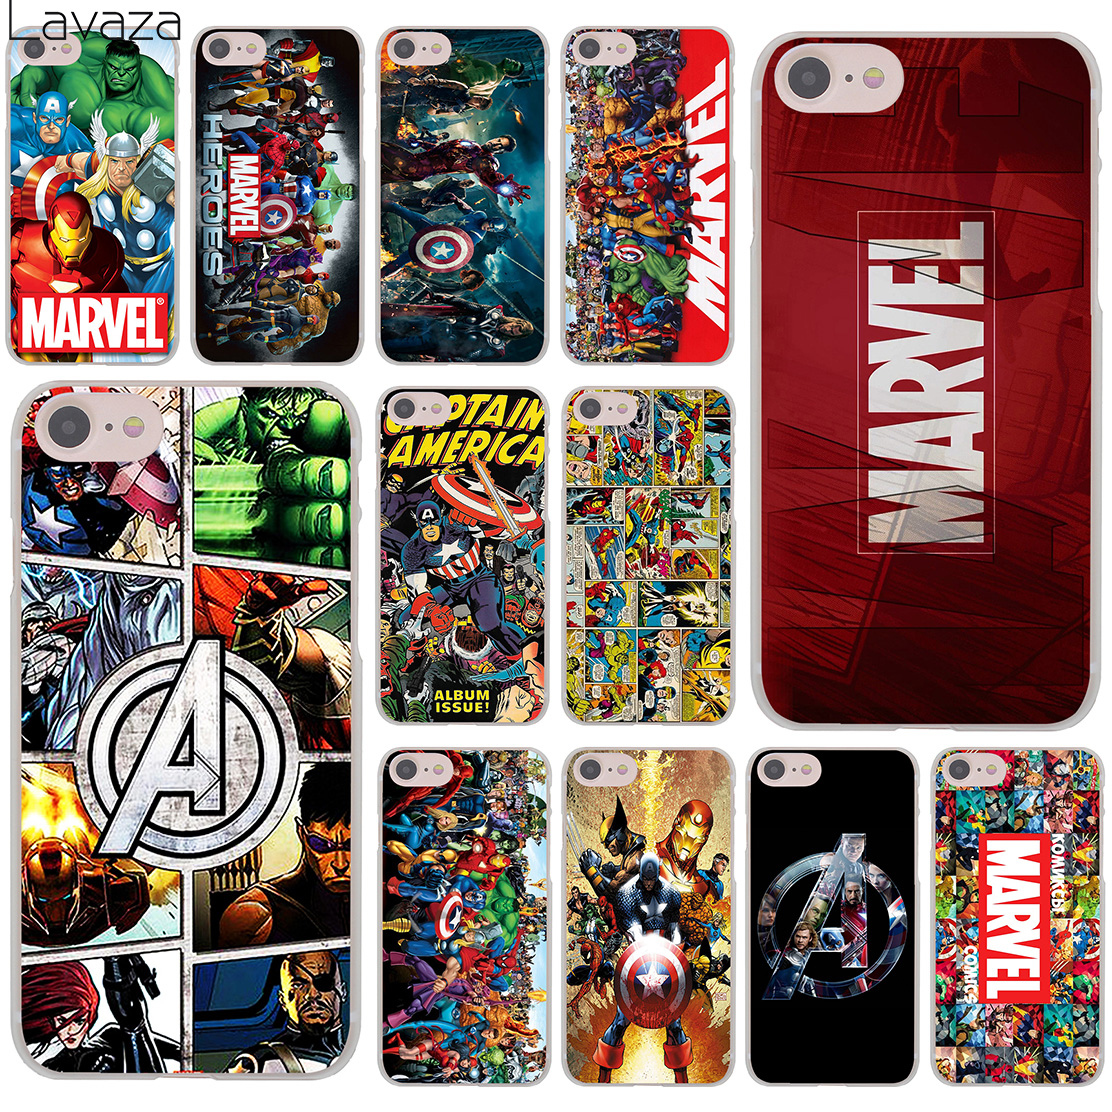 Lavaza <font><b>Marvel</b></font> Superheroes The Avengers 8Plus Hard <font><b>Phone</b></font> Cover <font><b>Case</b></font> for iPhone XR X 11 Pro XS Max 8 7 6 6S 5 5S SE 4S 4 10 image